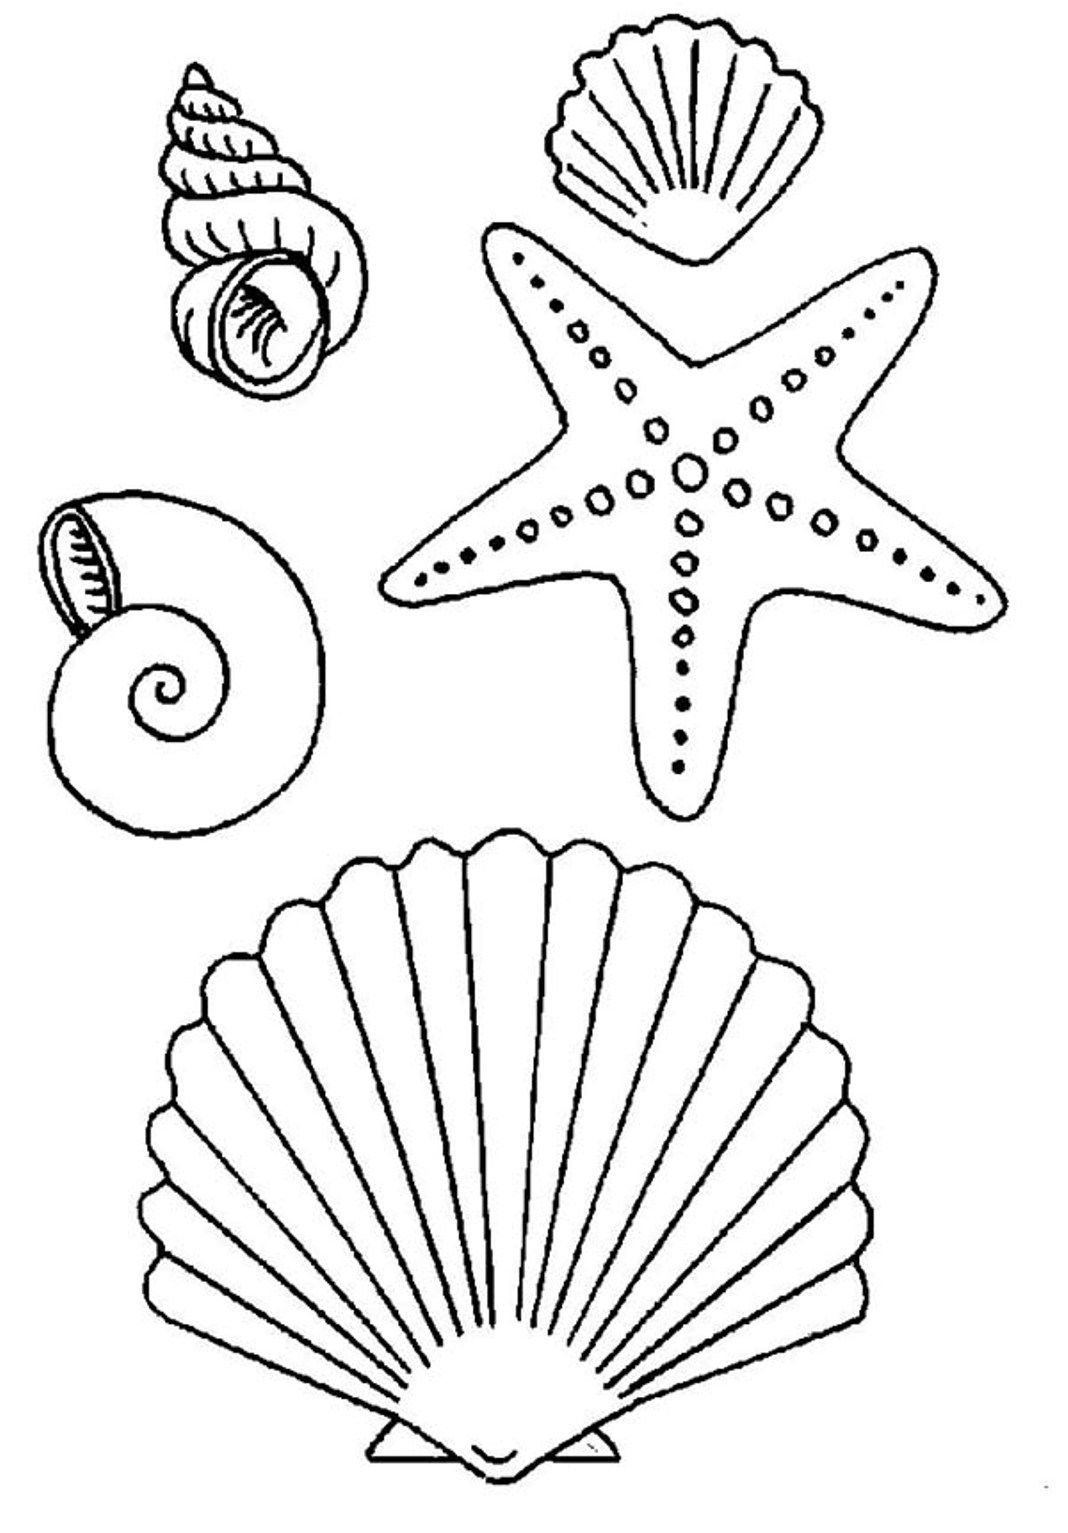 Images For Gt Simple Seashell Drawings